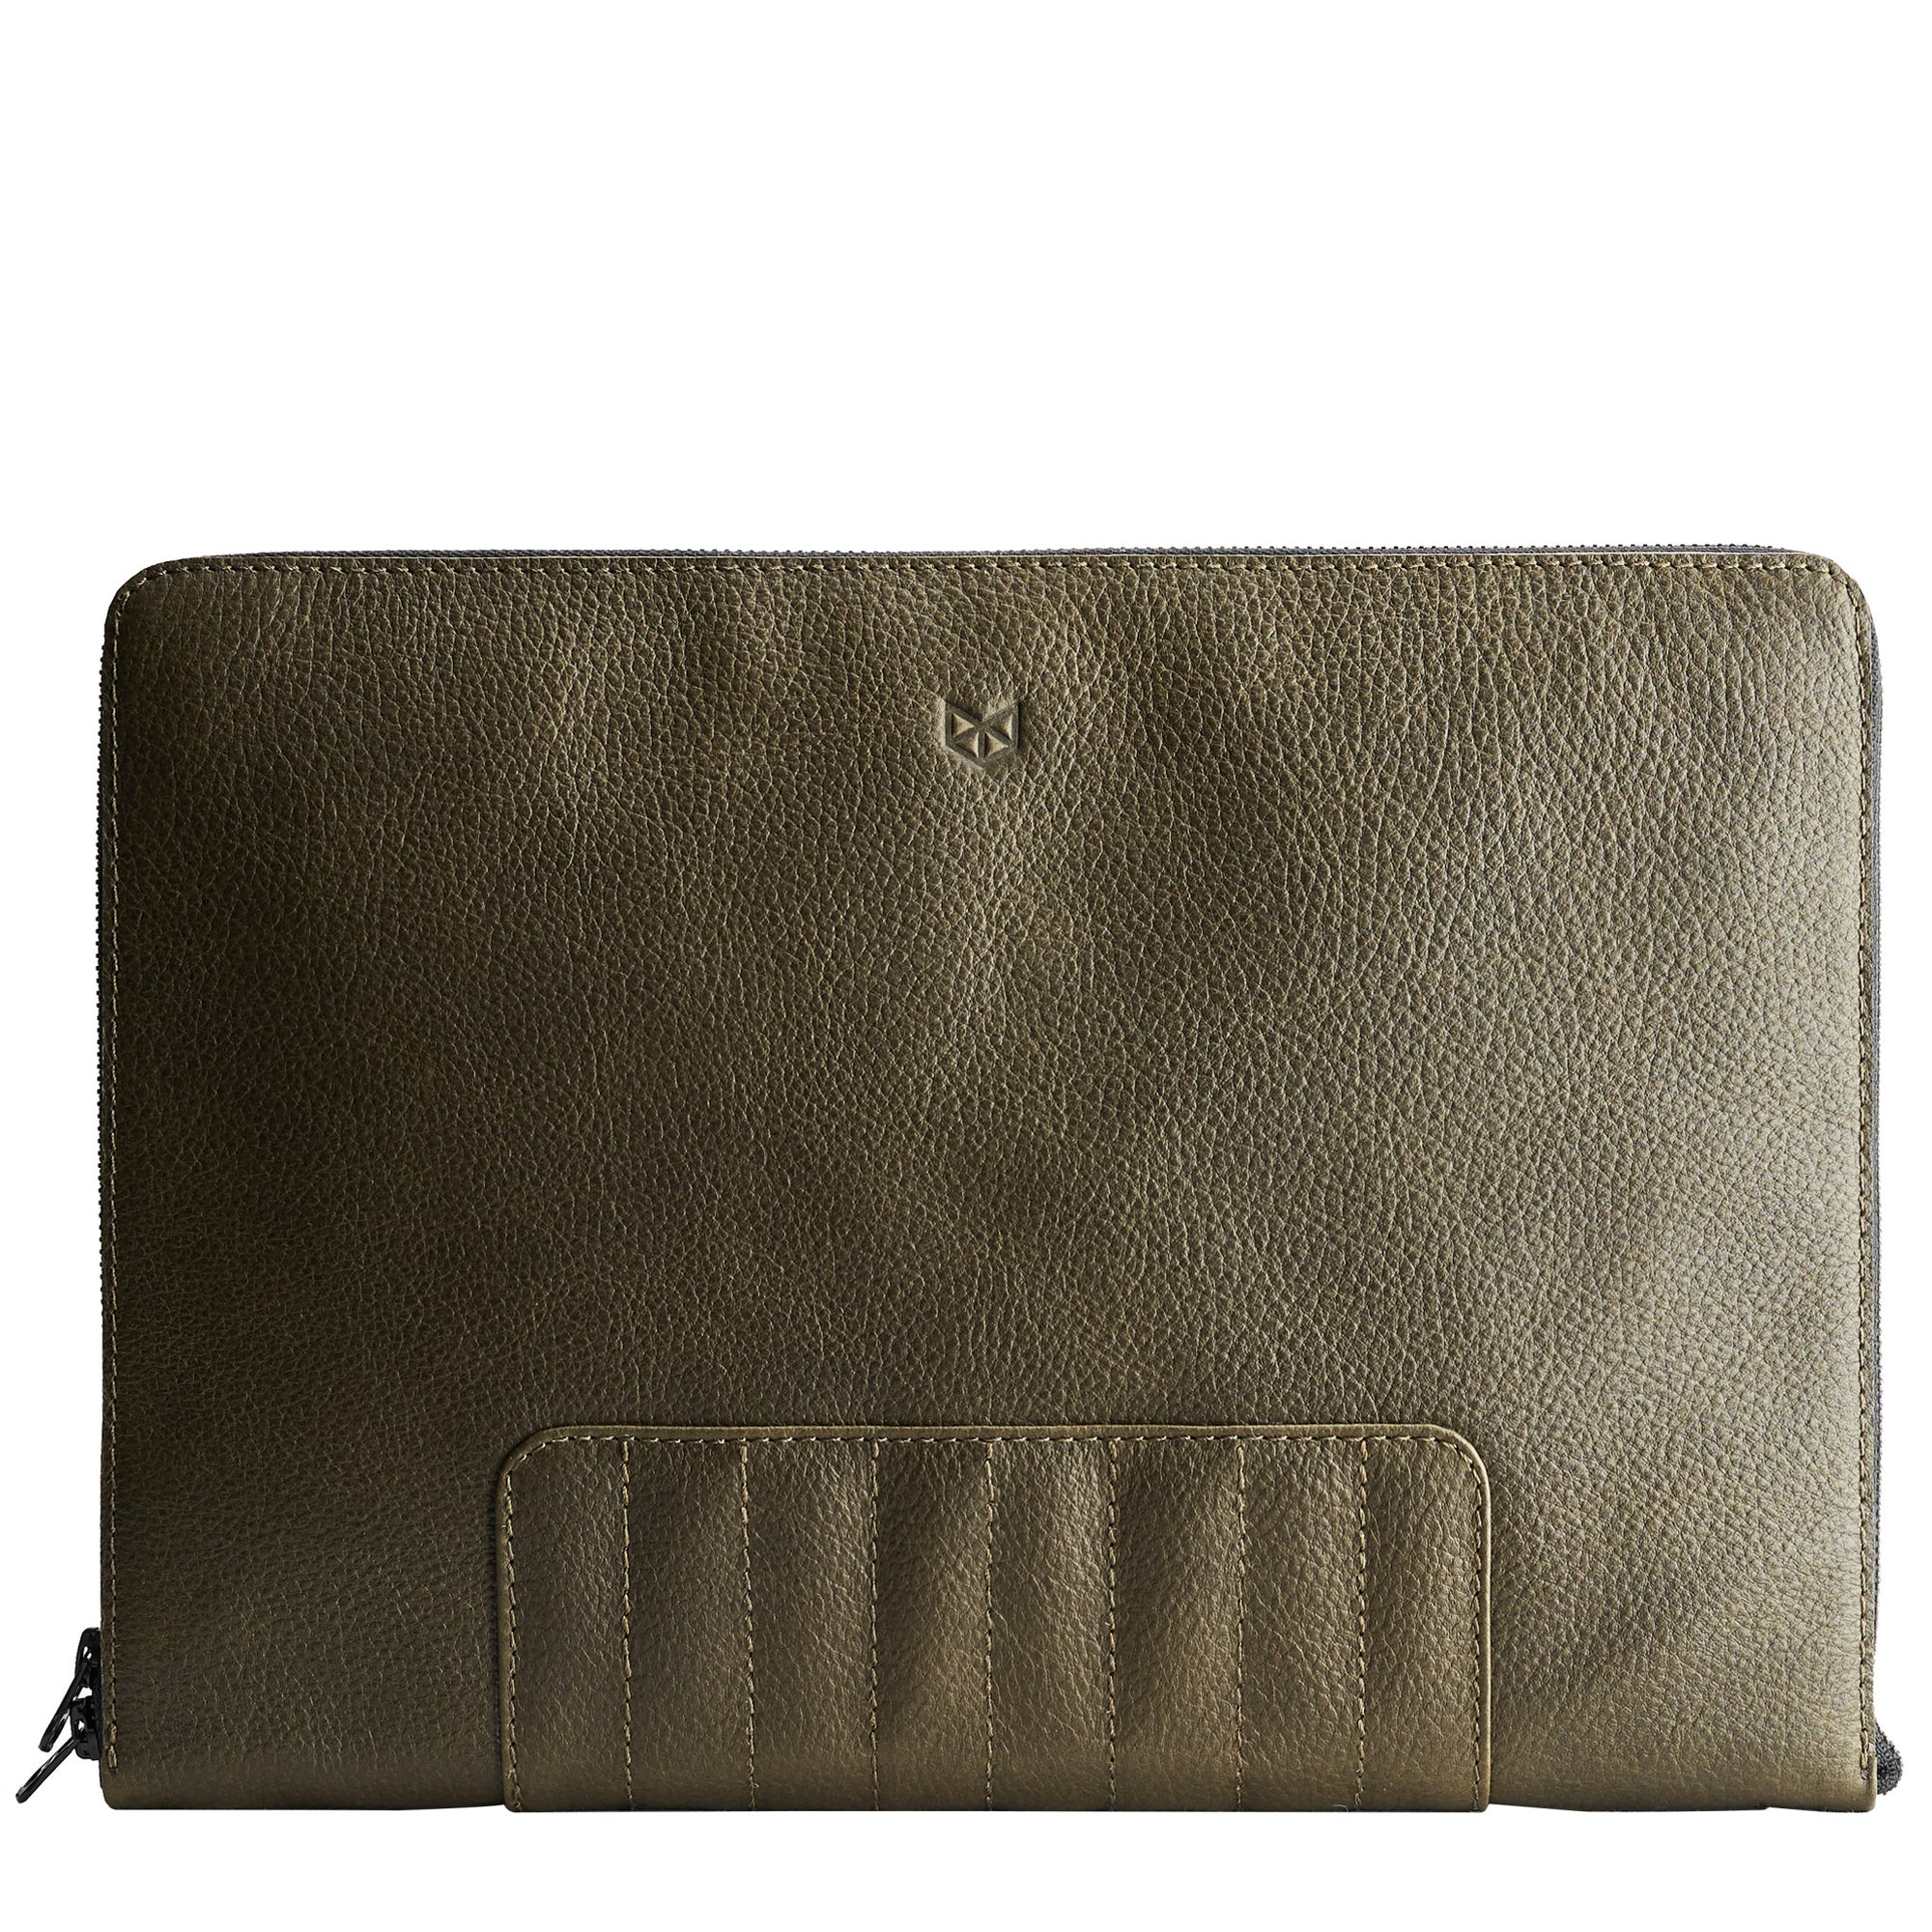 Green Leather Laptop Portfolio Case. Laptops & devices Bag.